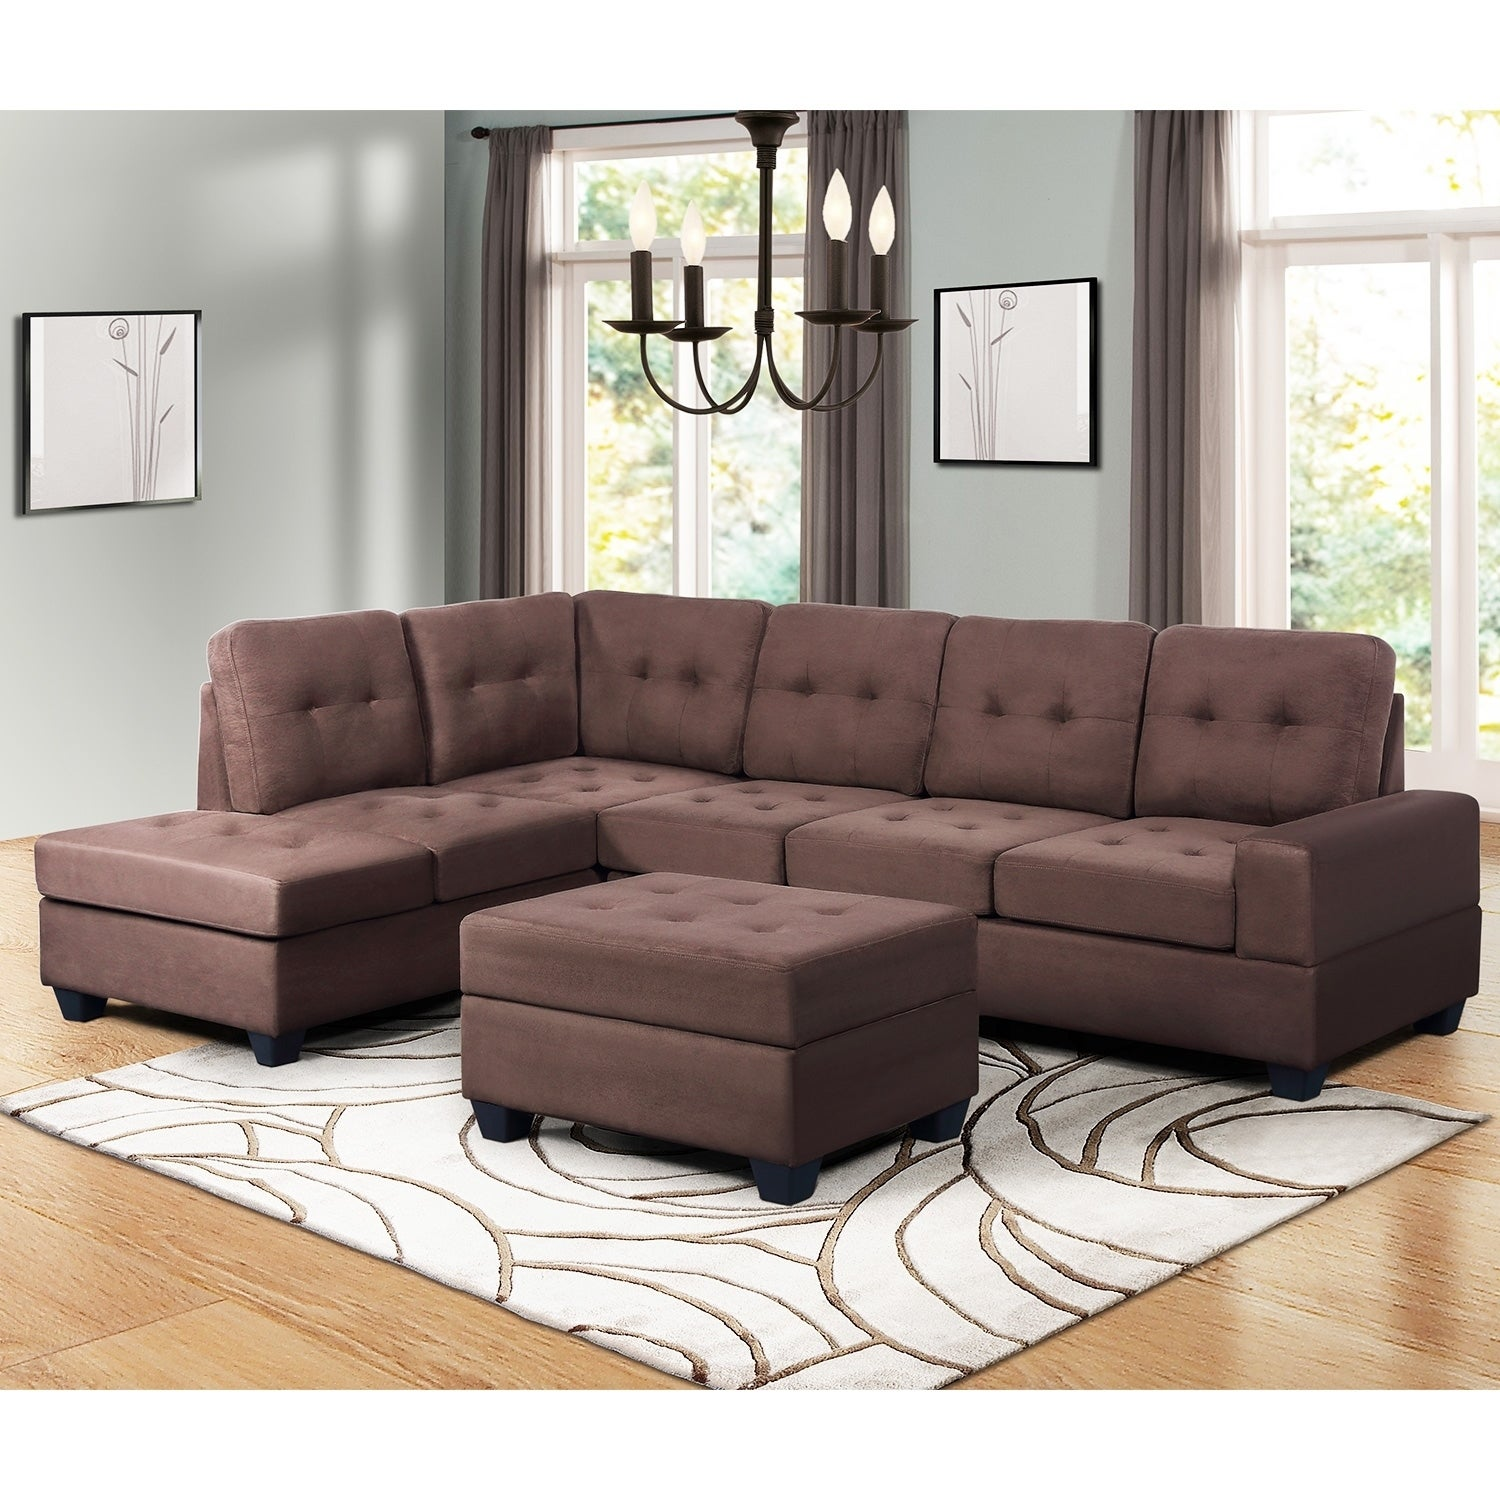 Shop Harper & Bright Designs 3 Piece Sectional Sofa Microfiber with ...